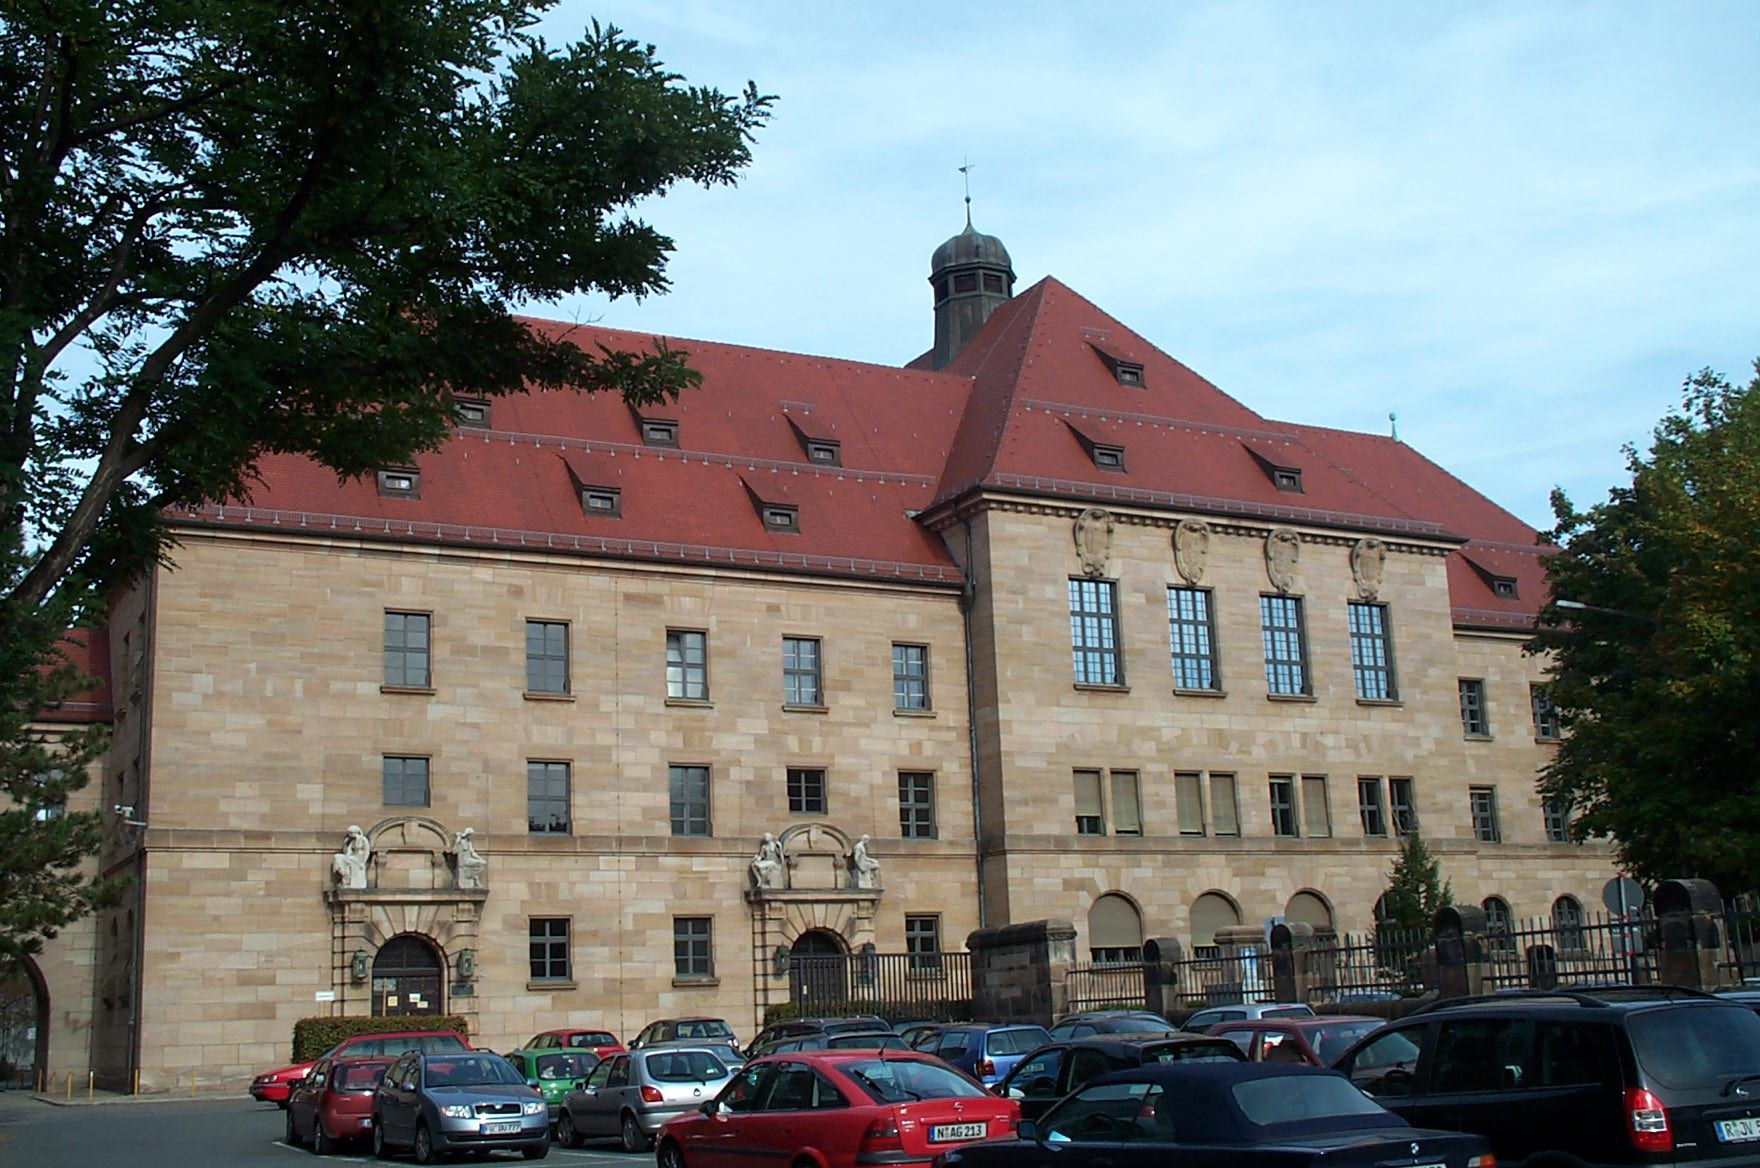 Palace of Justice, Nurnburg, Germany, October 2006. Trials of Nazis held here.